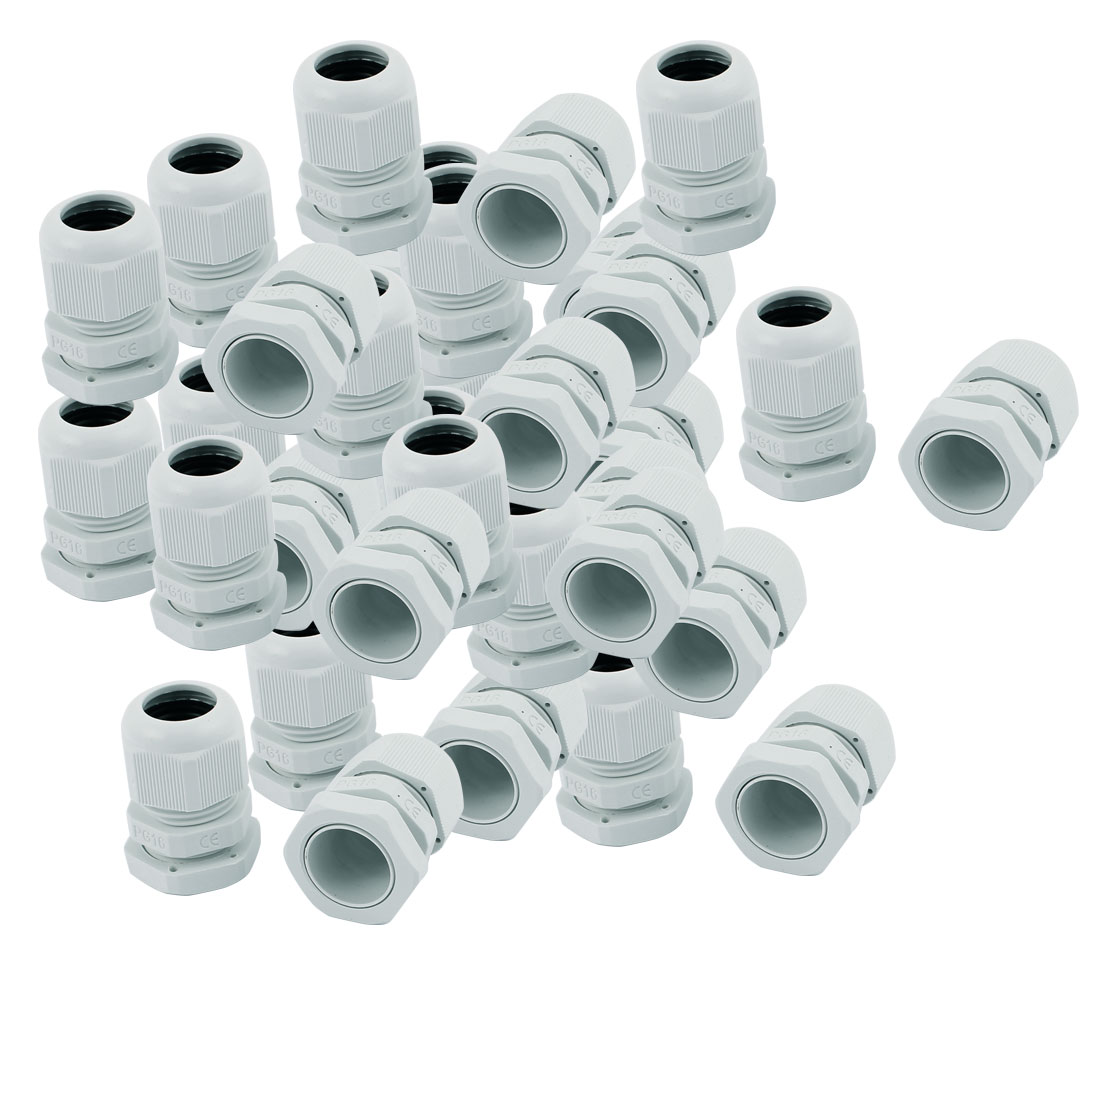 35 PCS PG16 Waterproof Cable Glands Fixing Cord Connector Joint Adapter White